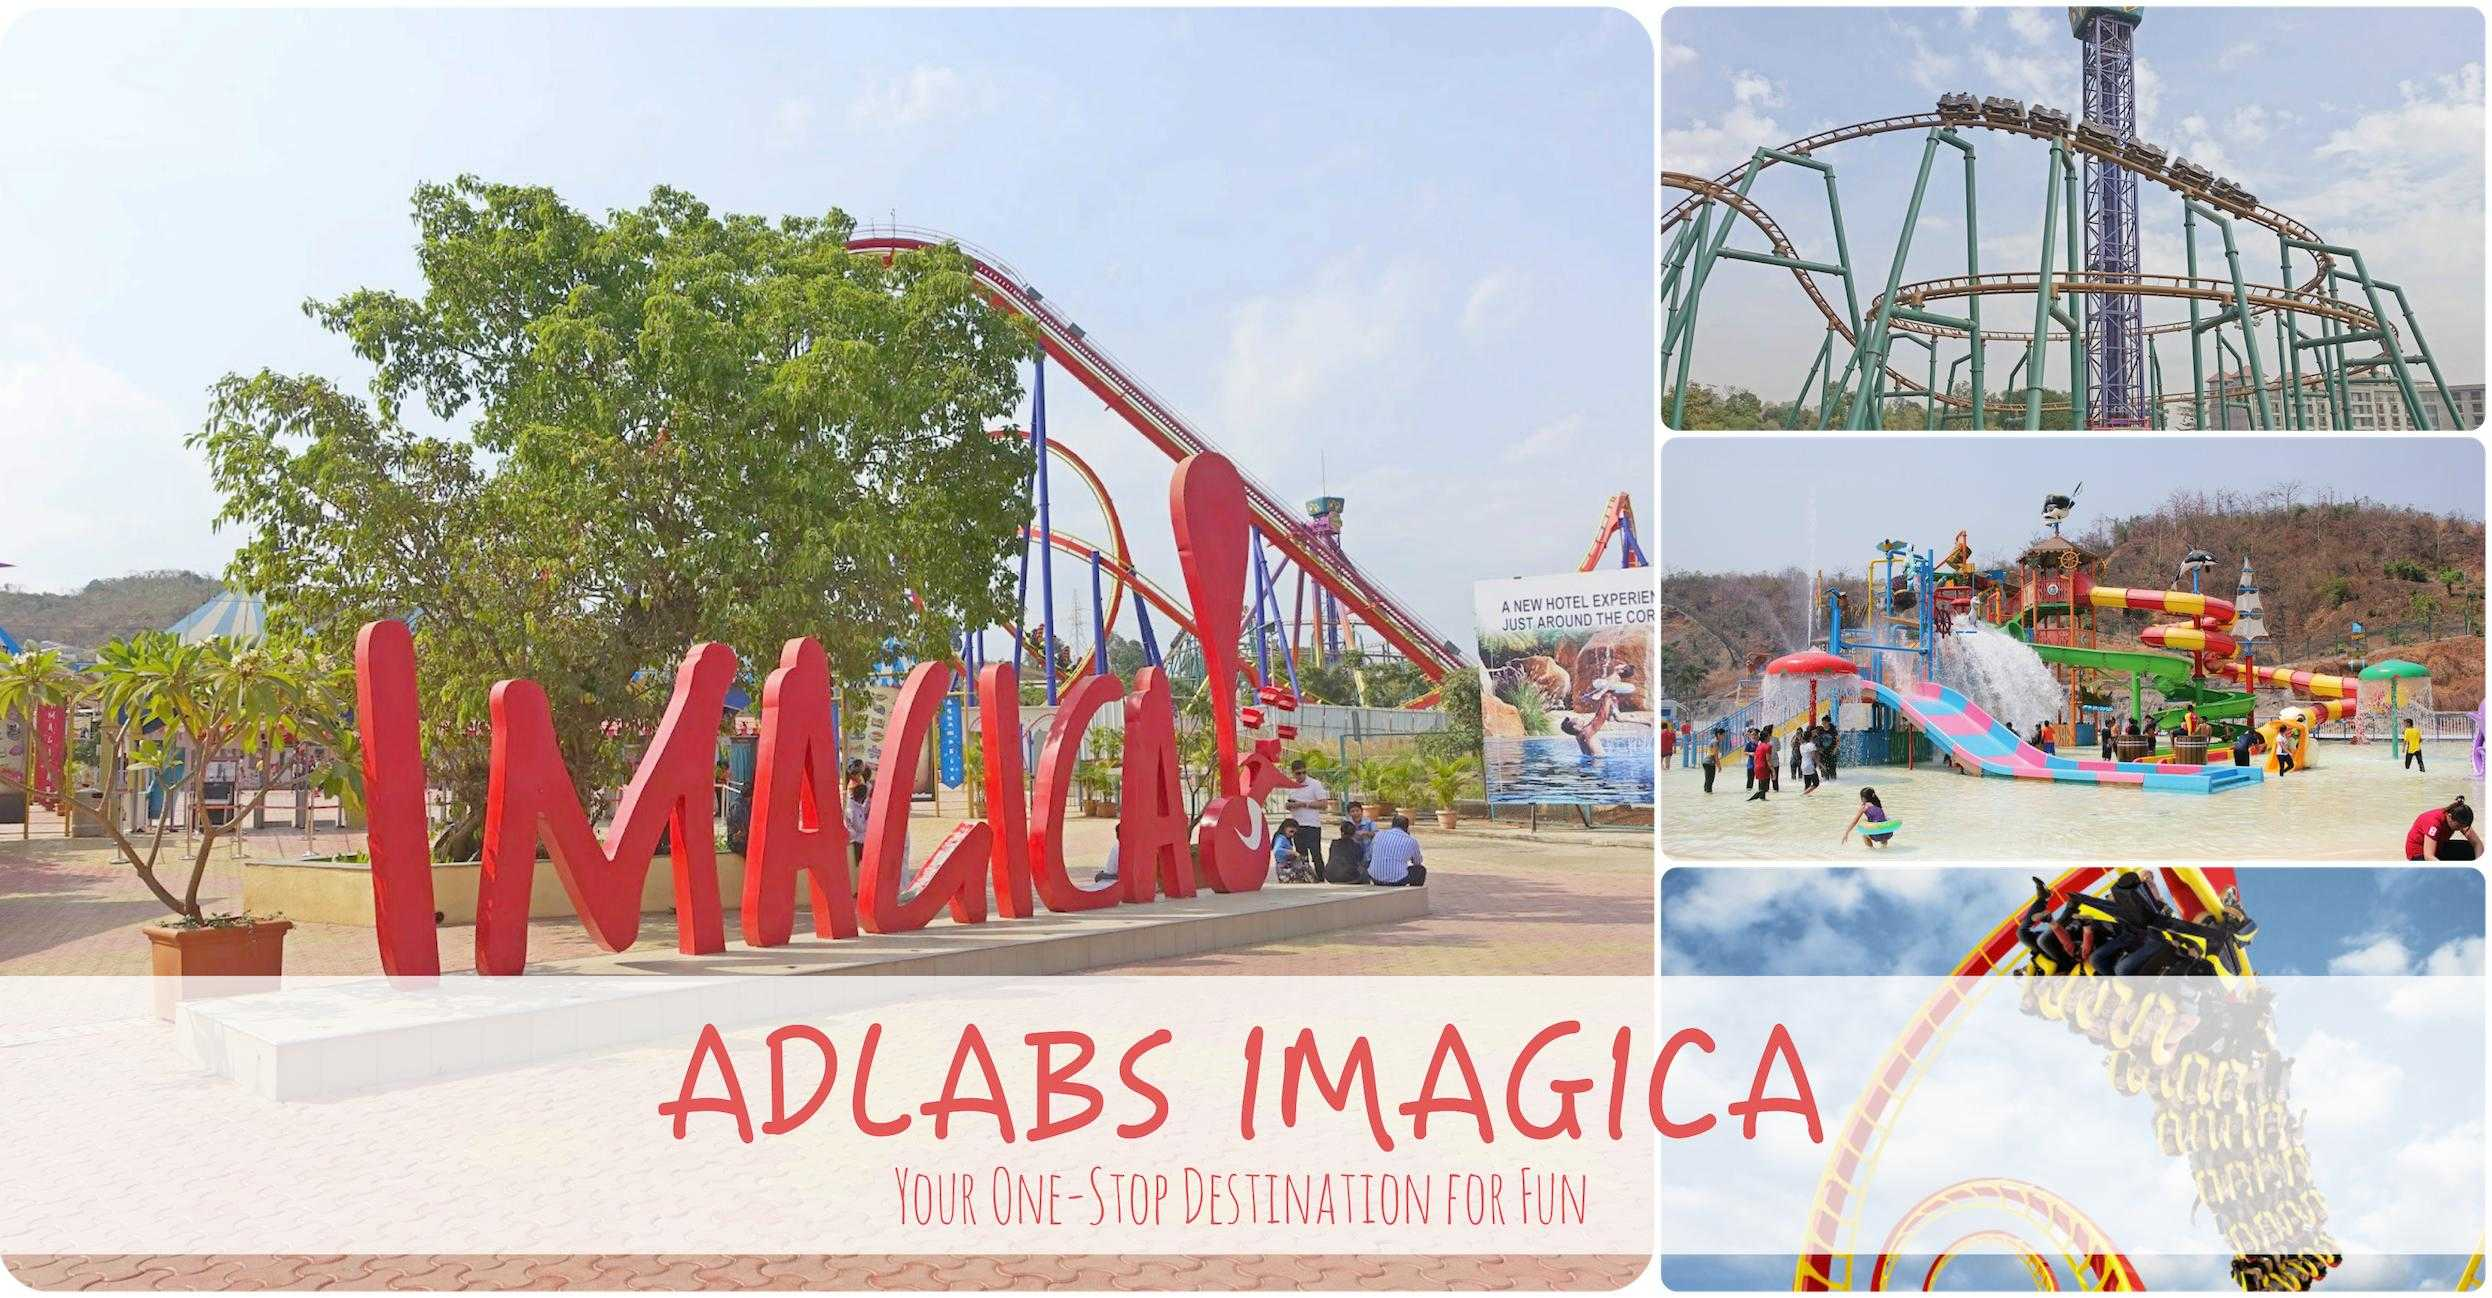 imagica-themepark-mumbai-entry-fees.